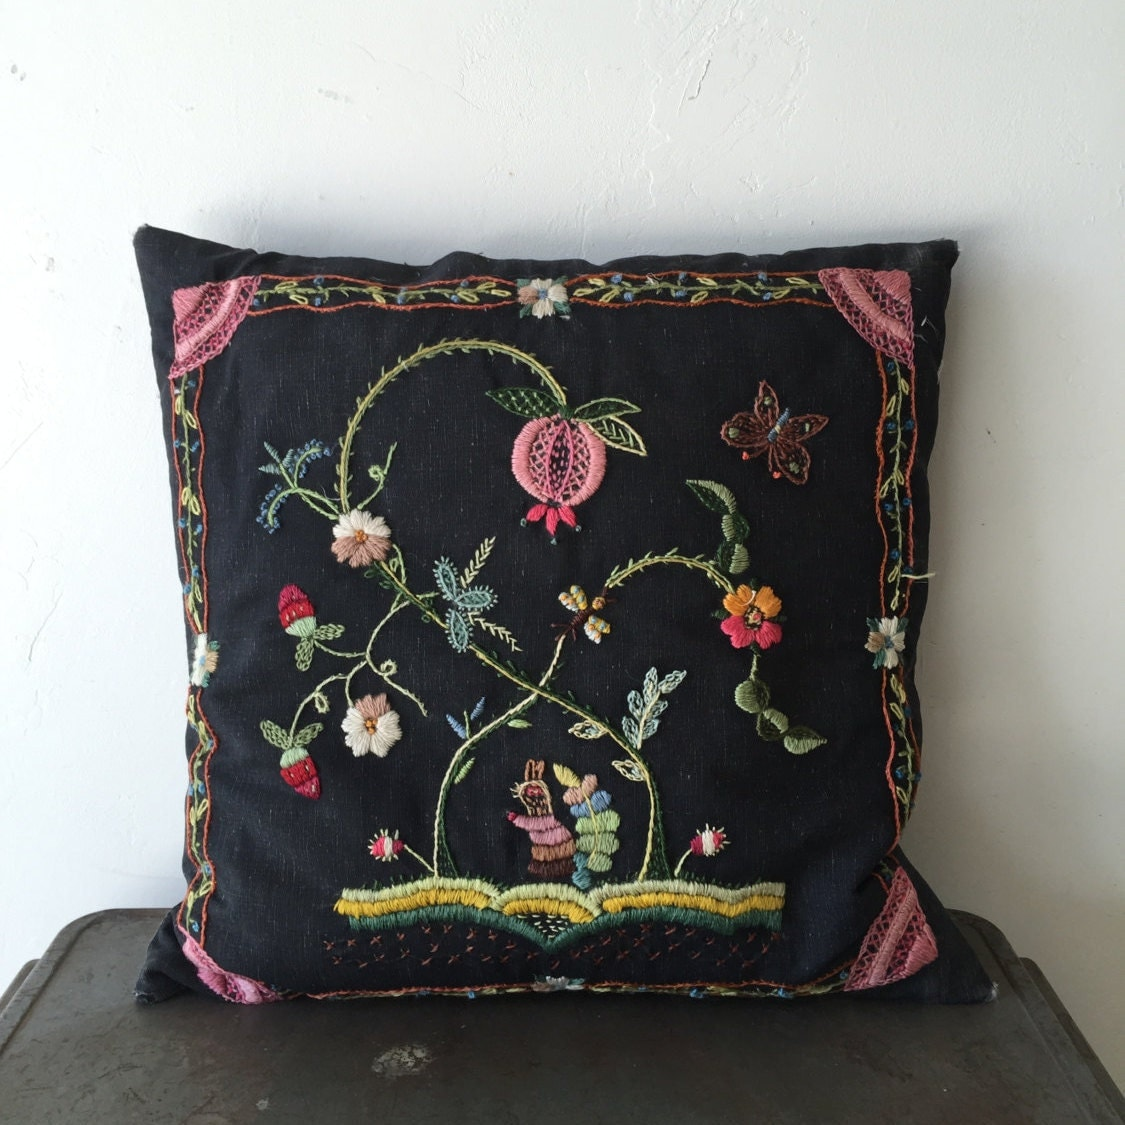 Vintage Embroidered Throw Pillow Black Pink Green with